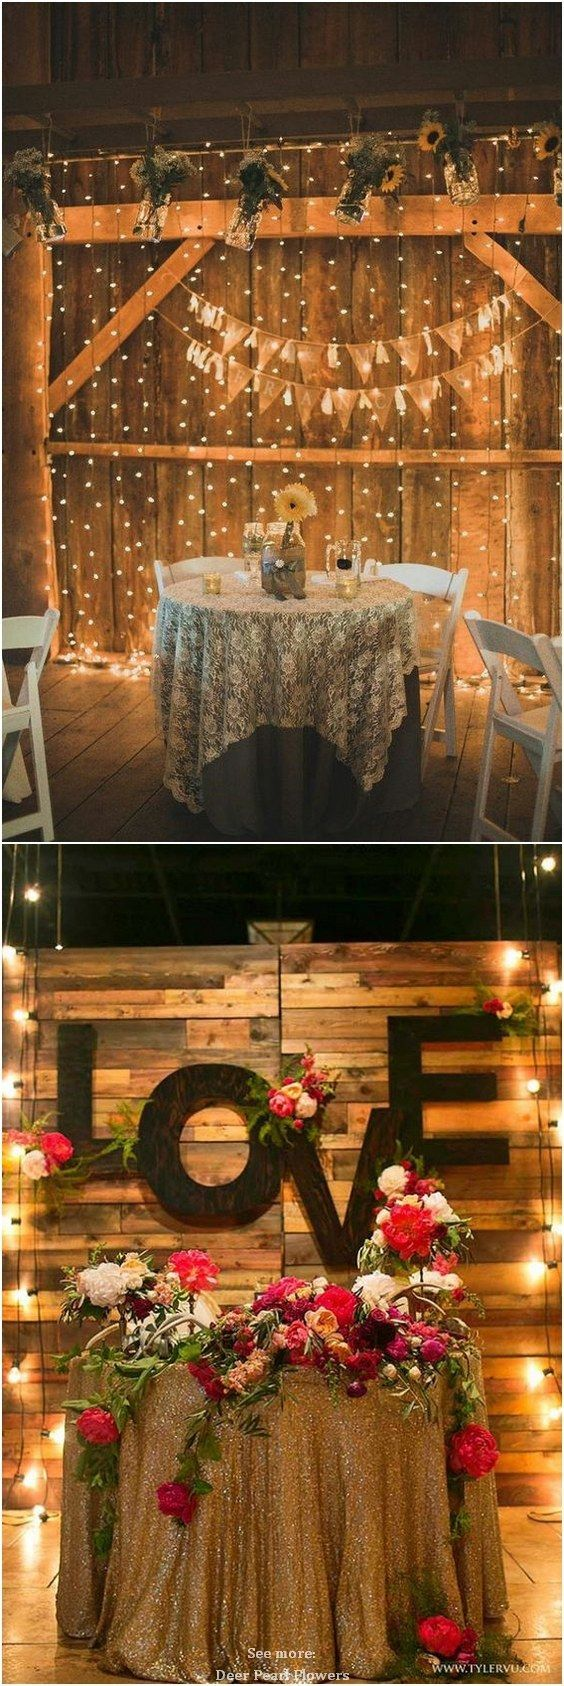 wedding reception at home ideas uk%0A Rustic country wedding ideas  rustic sweetheart table decor for wedding  reception   http